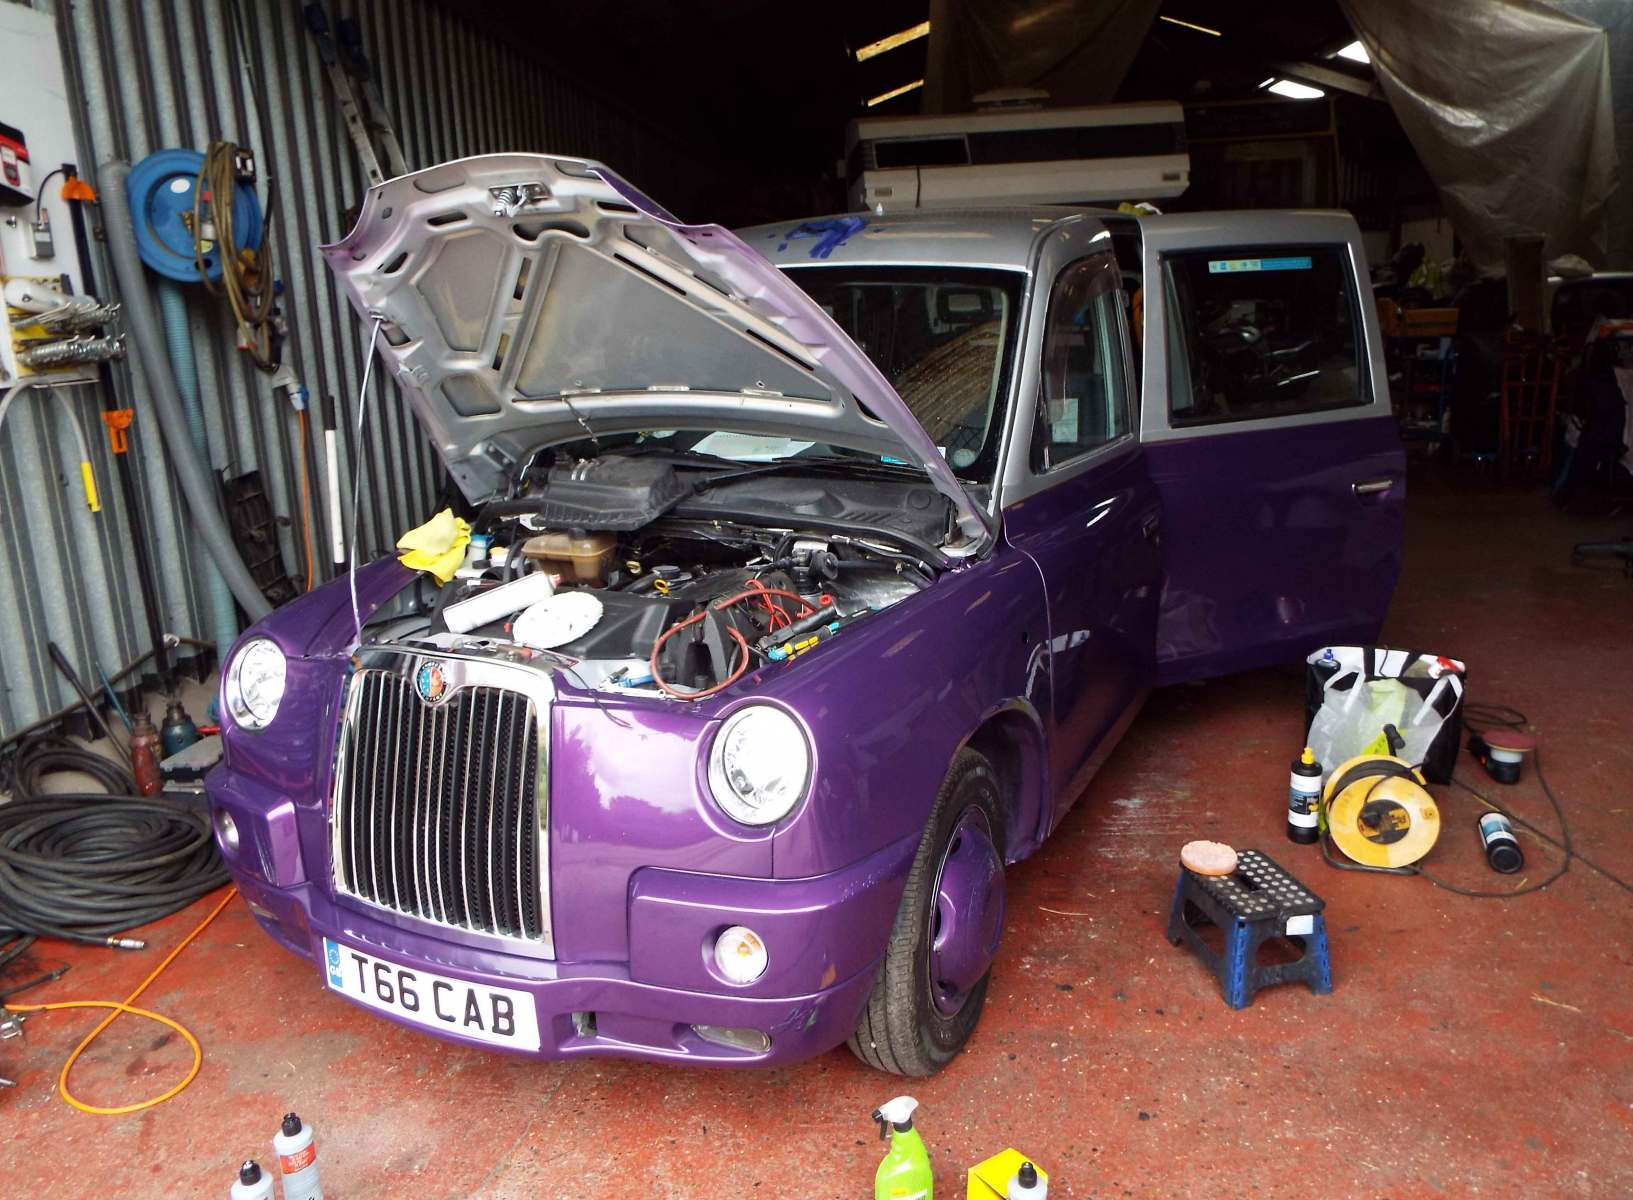 Who says a London cab has to be black? Restoration takes many guises